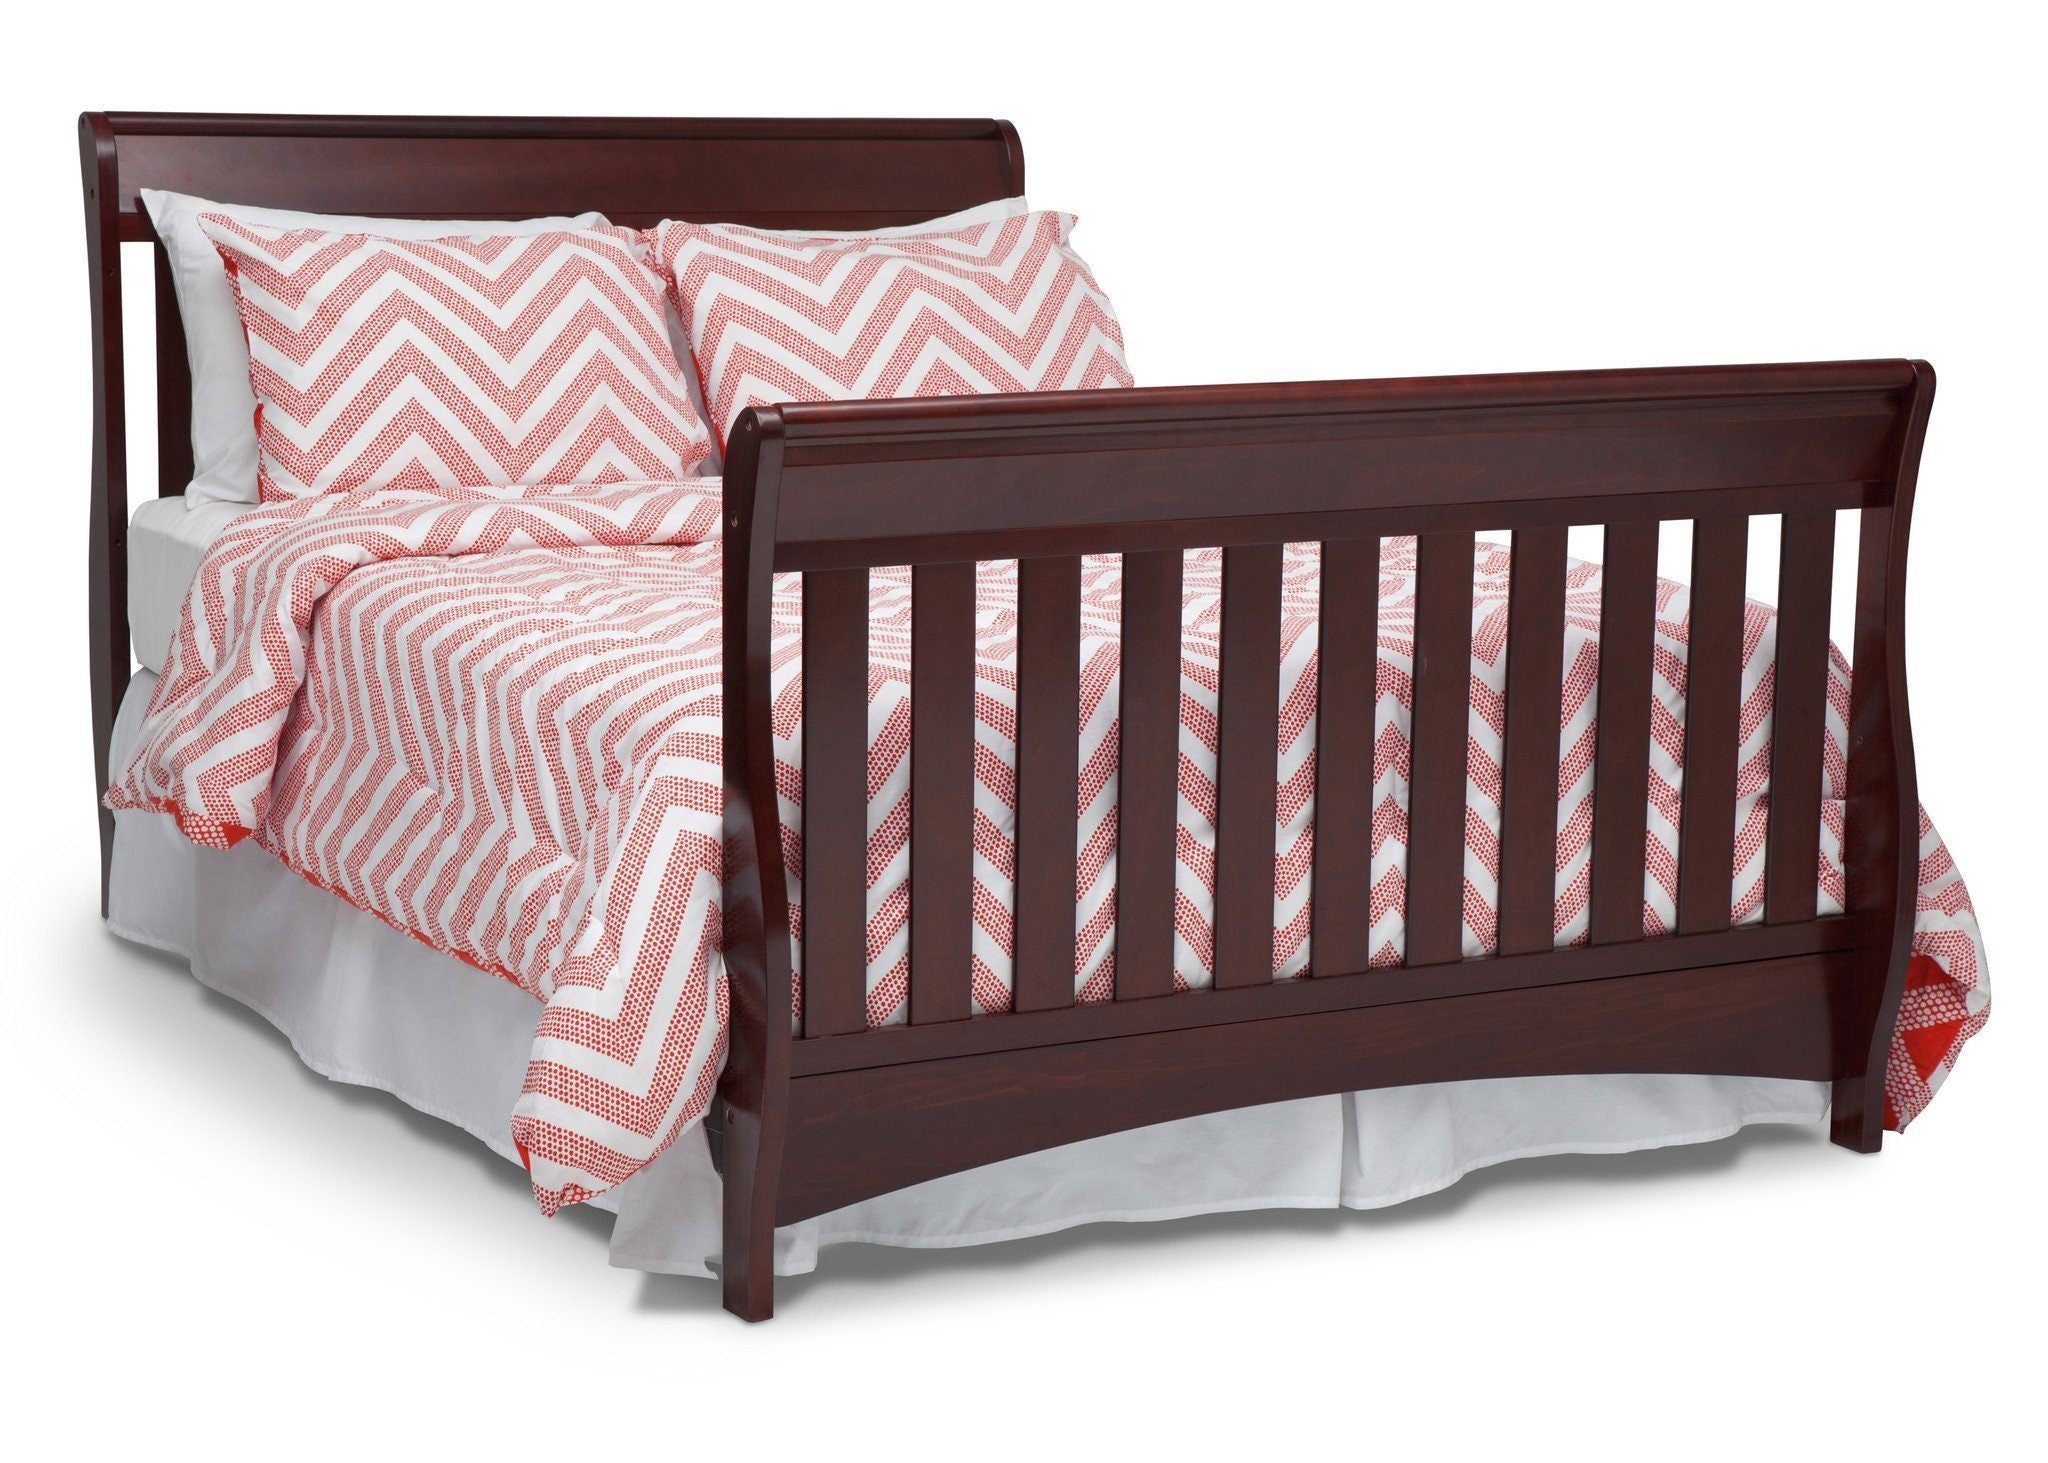 Delta Children Black Cherry Espresso (607) Bentley 'S' Series 4-in-1 Crib, Full-Size Conversion c6c